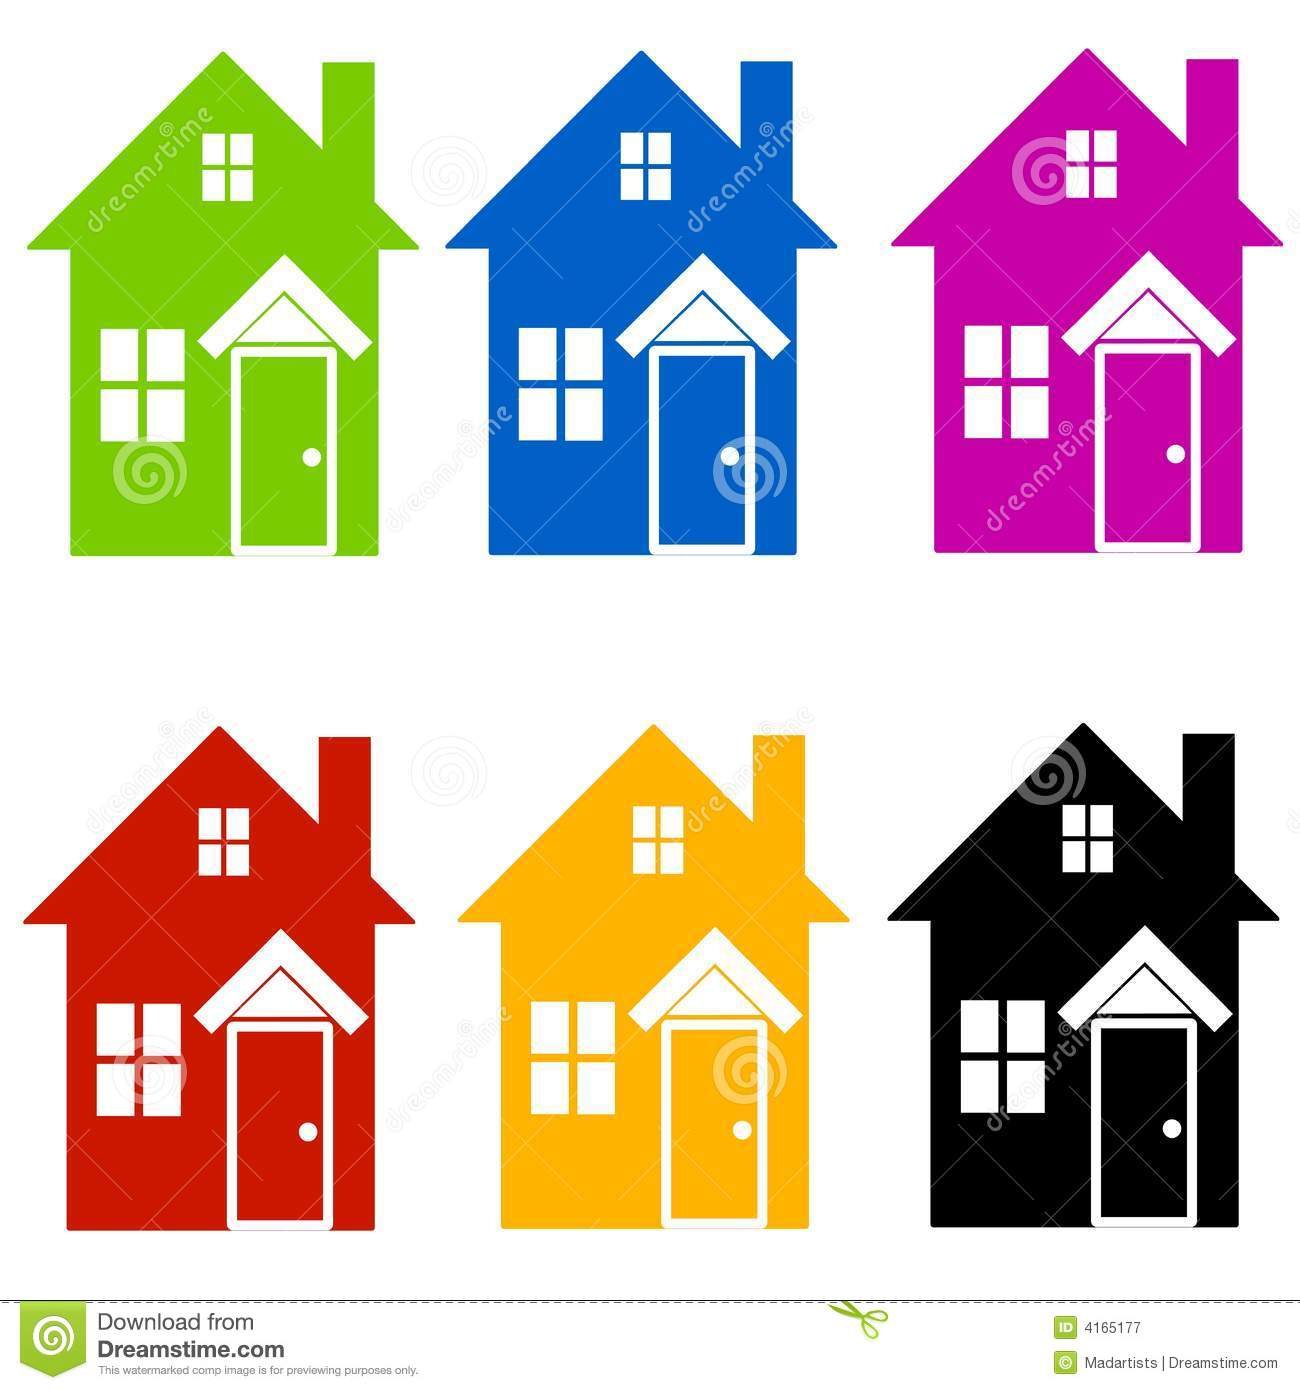 colourful house silhouettes clip art stock illustration rh dreamstime com  house image clipart